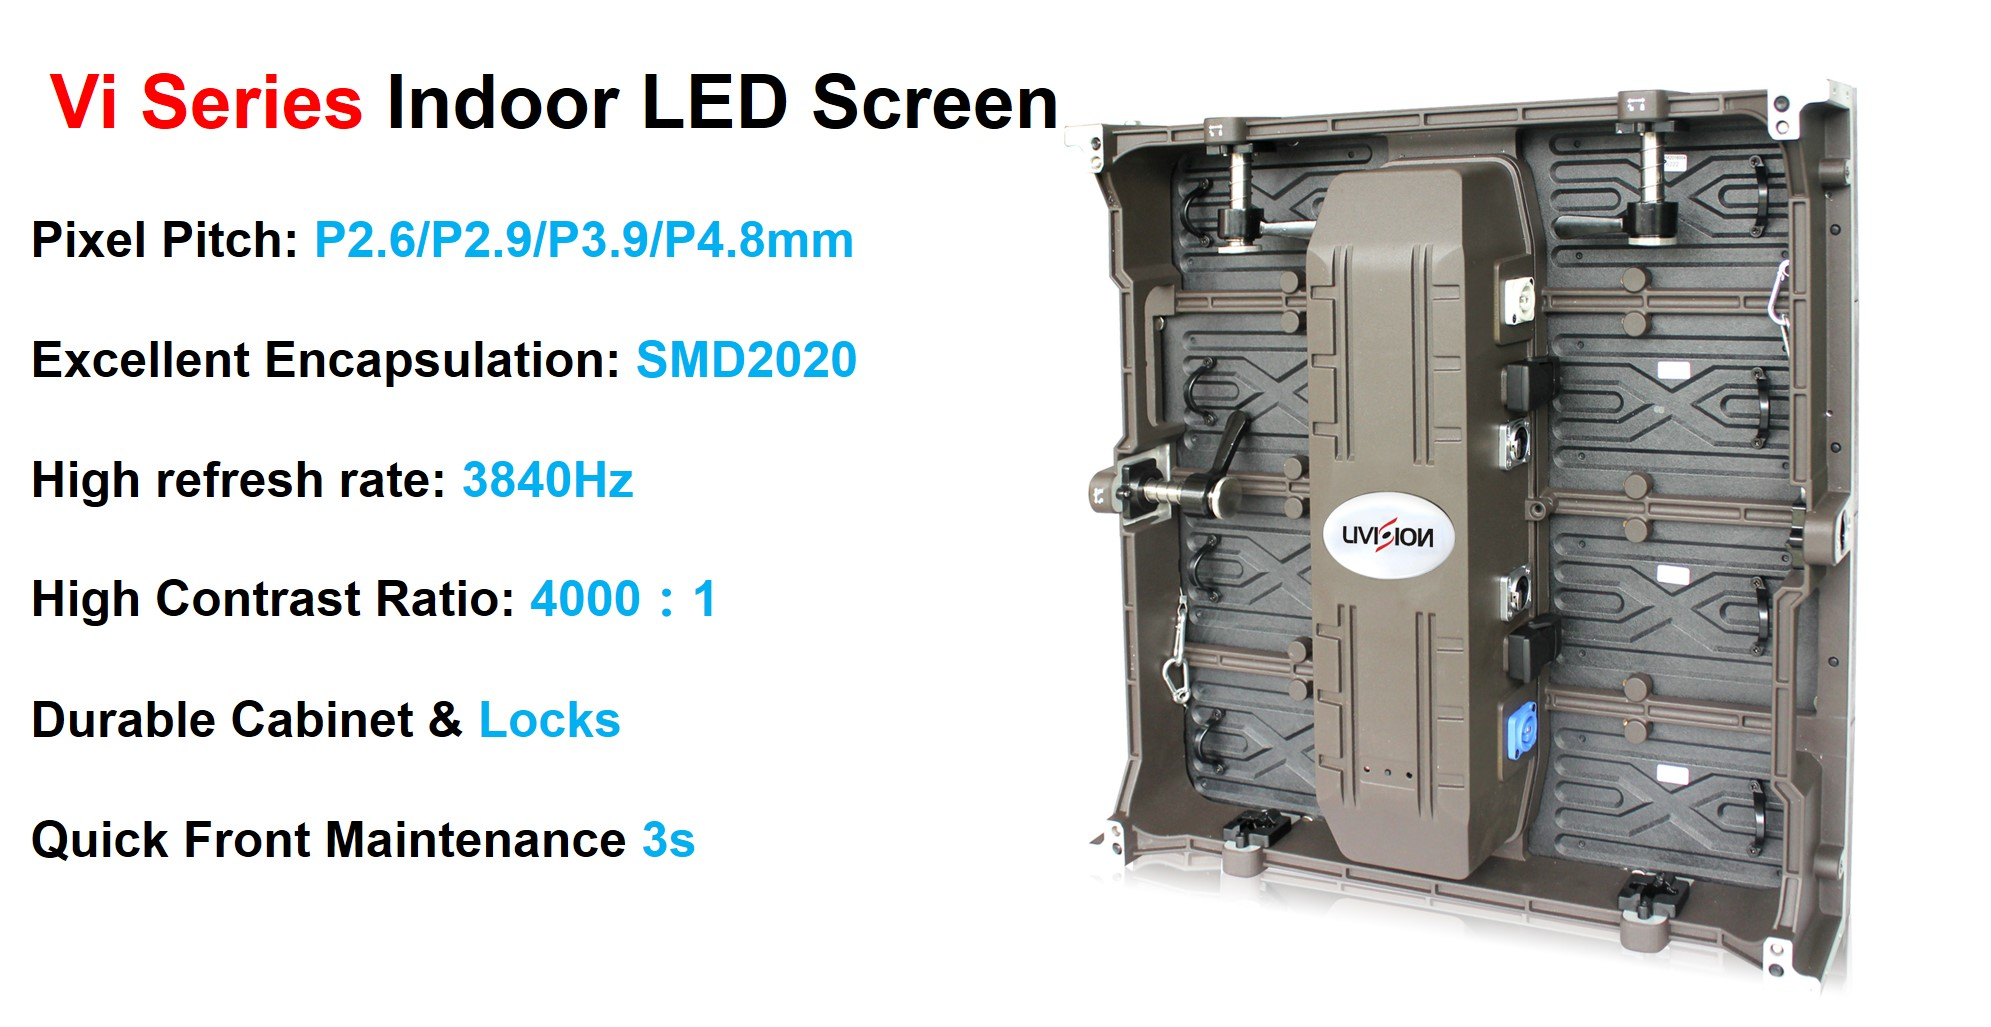 Vi series Indoor LED Screen